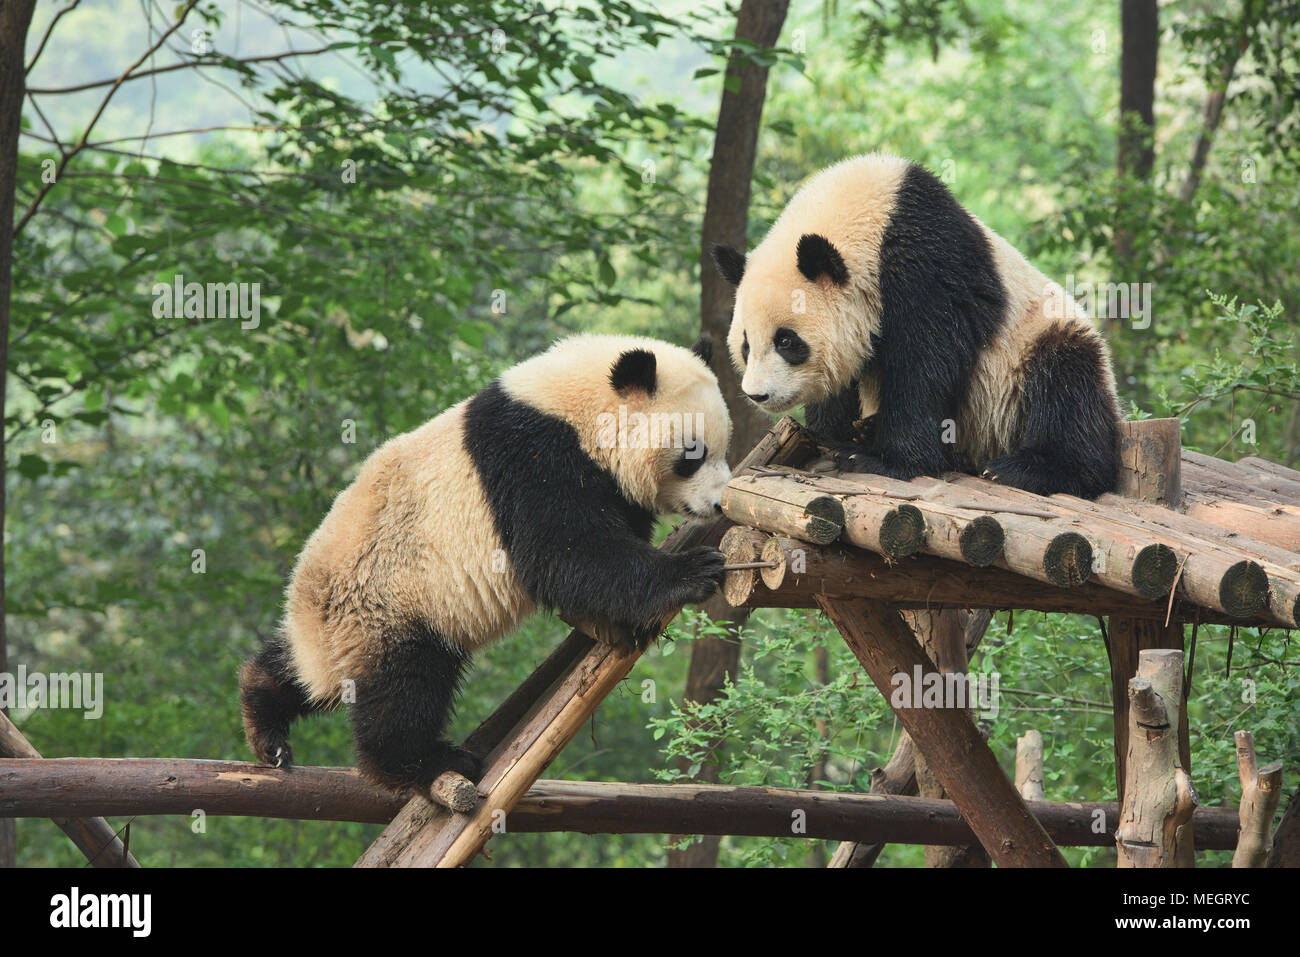 Giant pandas at the Chengdu Research Base of Giant Panda Breeding in Chengdu, Sichuan, China - Stock Image